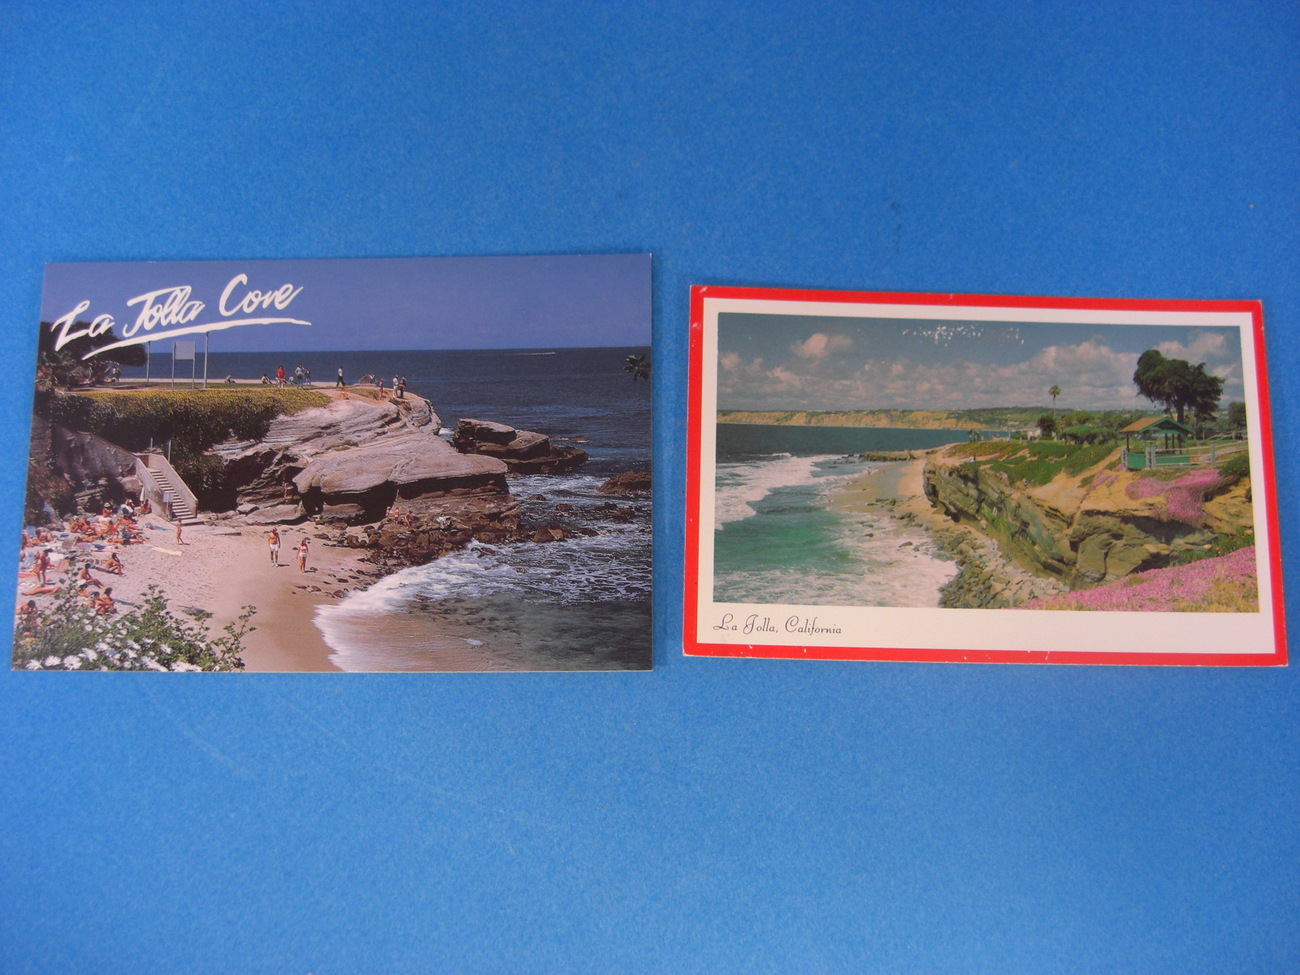 La Jolla Cove Two Postcards